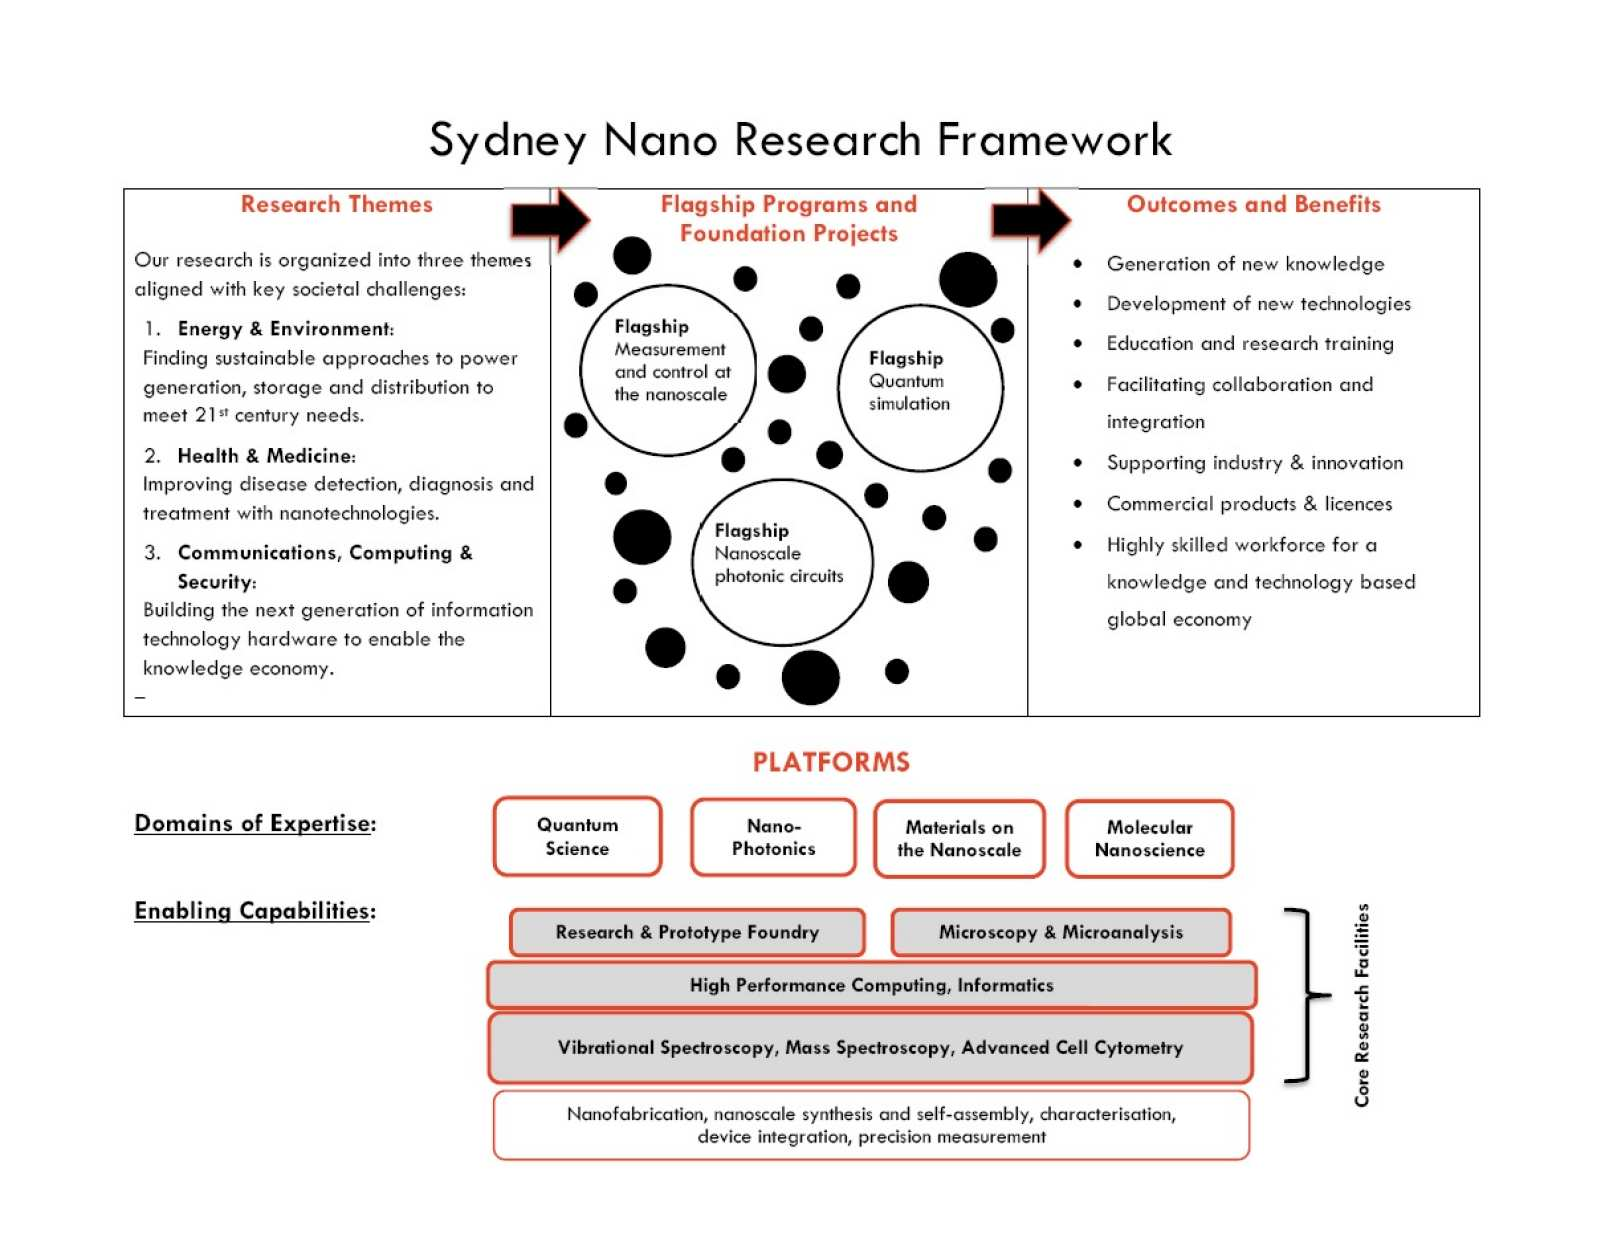 Sydney Nano research framework